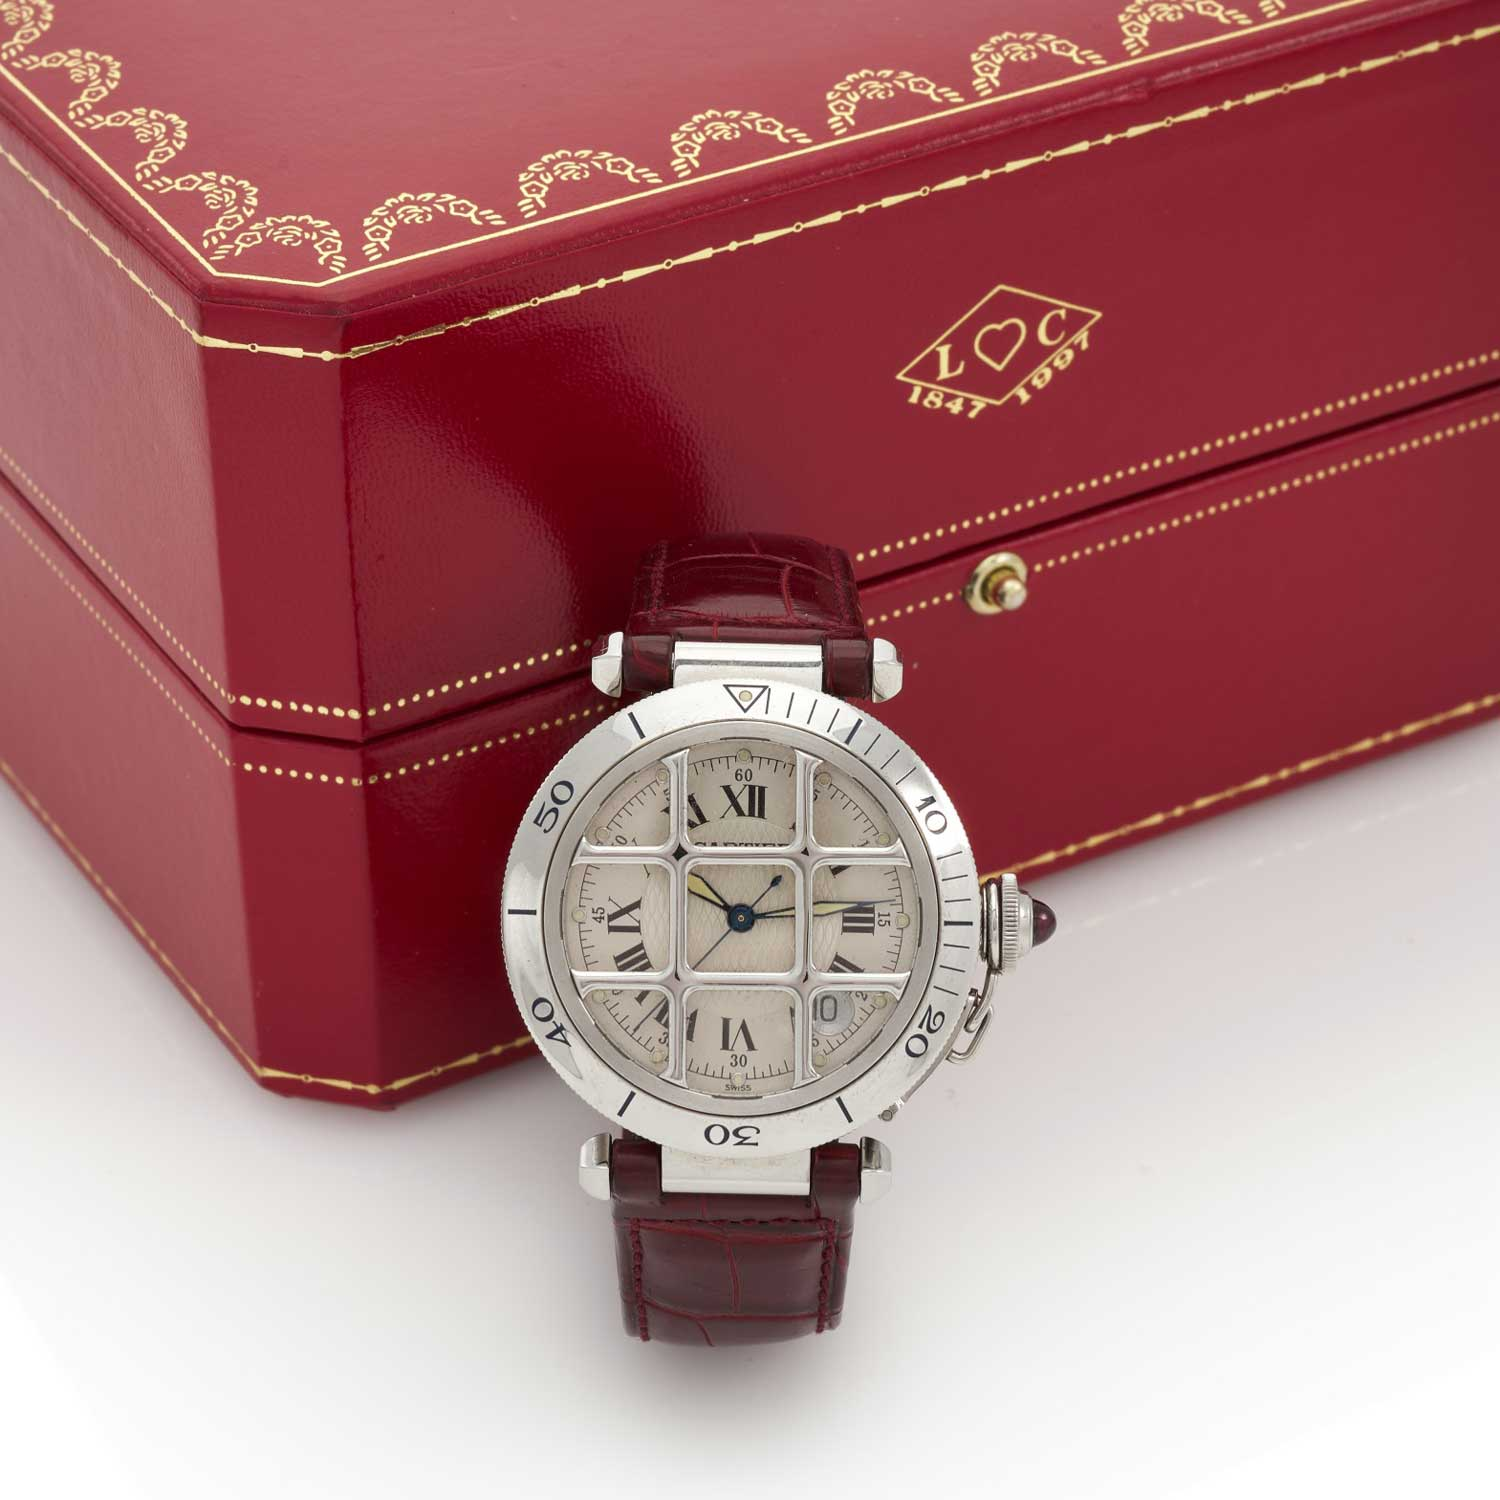 Limited edition Cartier Pasha 150th Anniversary in steel (Image: Sotheby's)